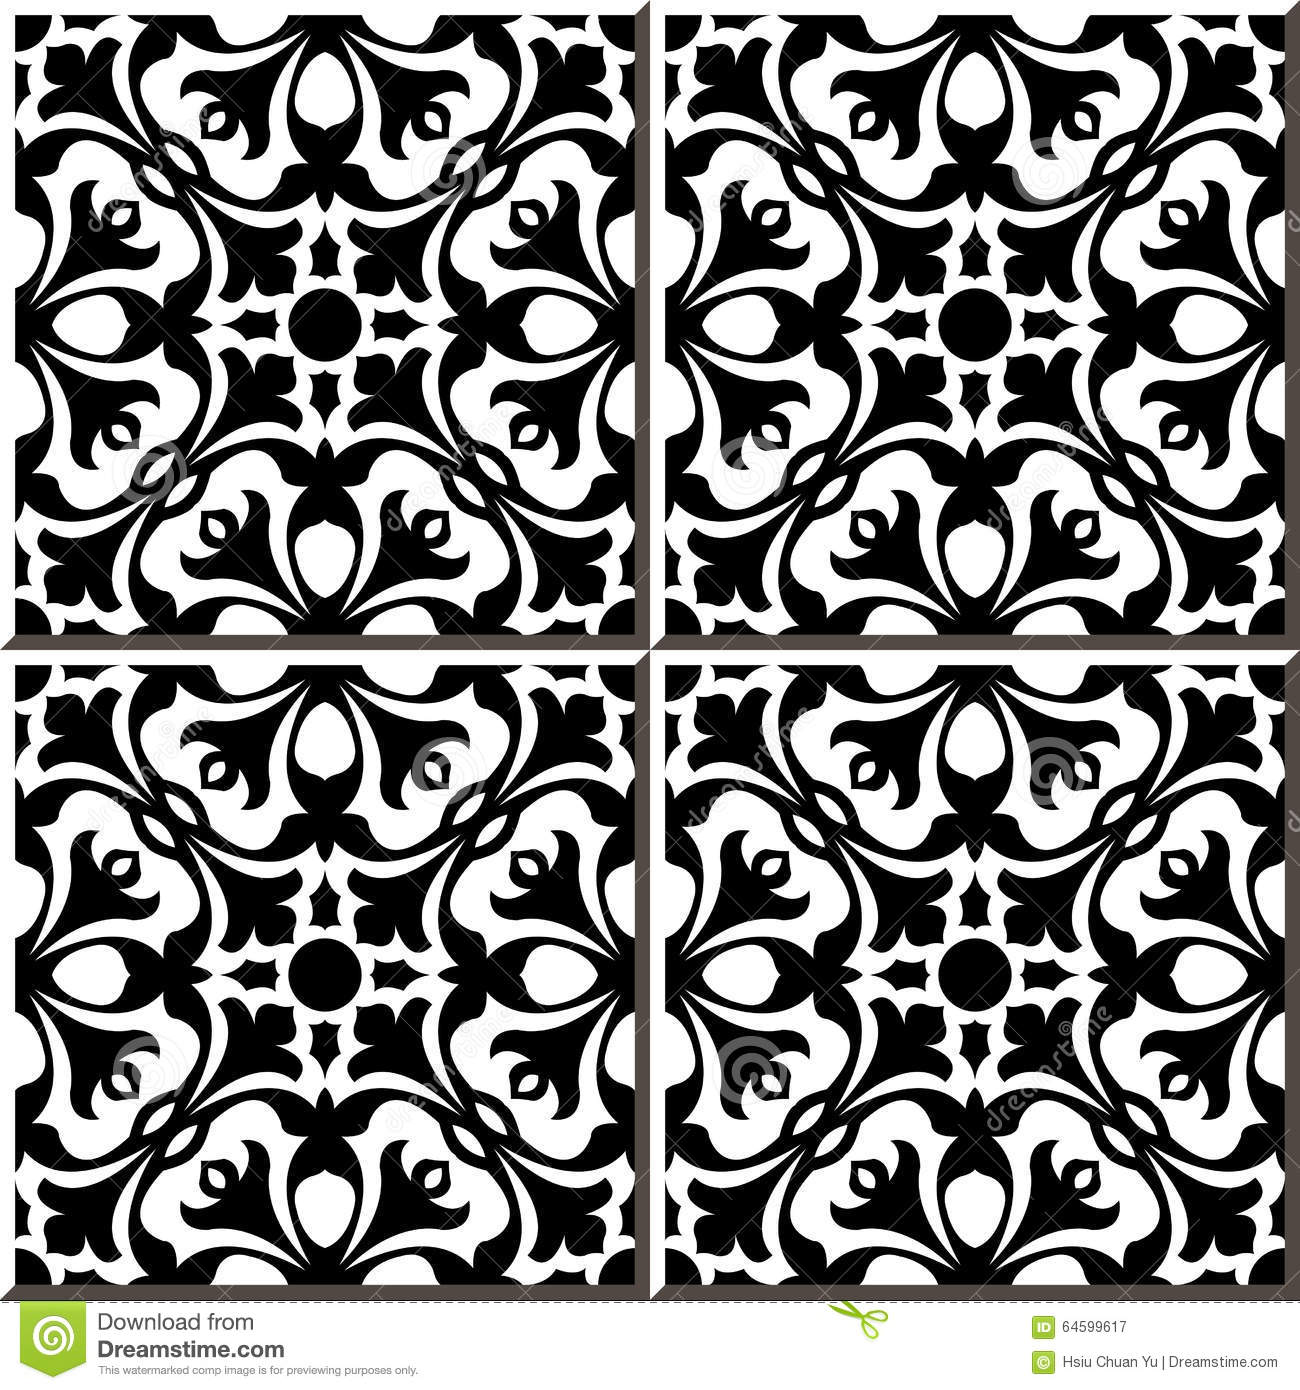 Vintage Seamless Wall Tiles Of Black White Geometry Flower Moroccan Portuguese Illustration 64599617 Megapixl